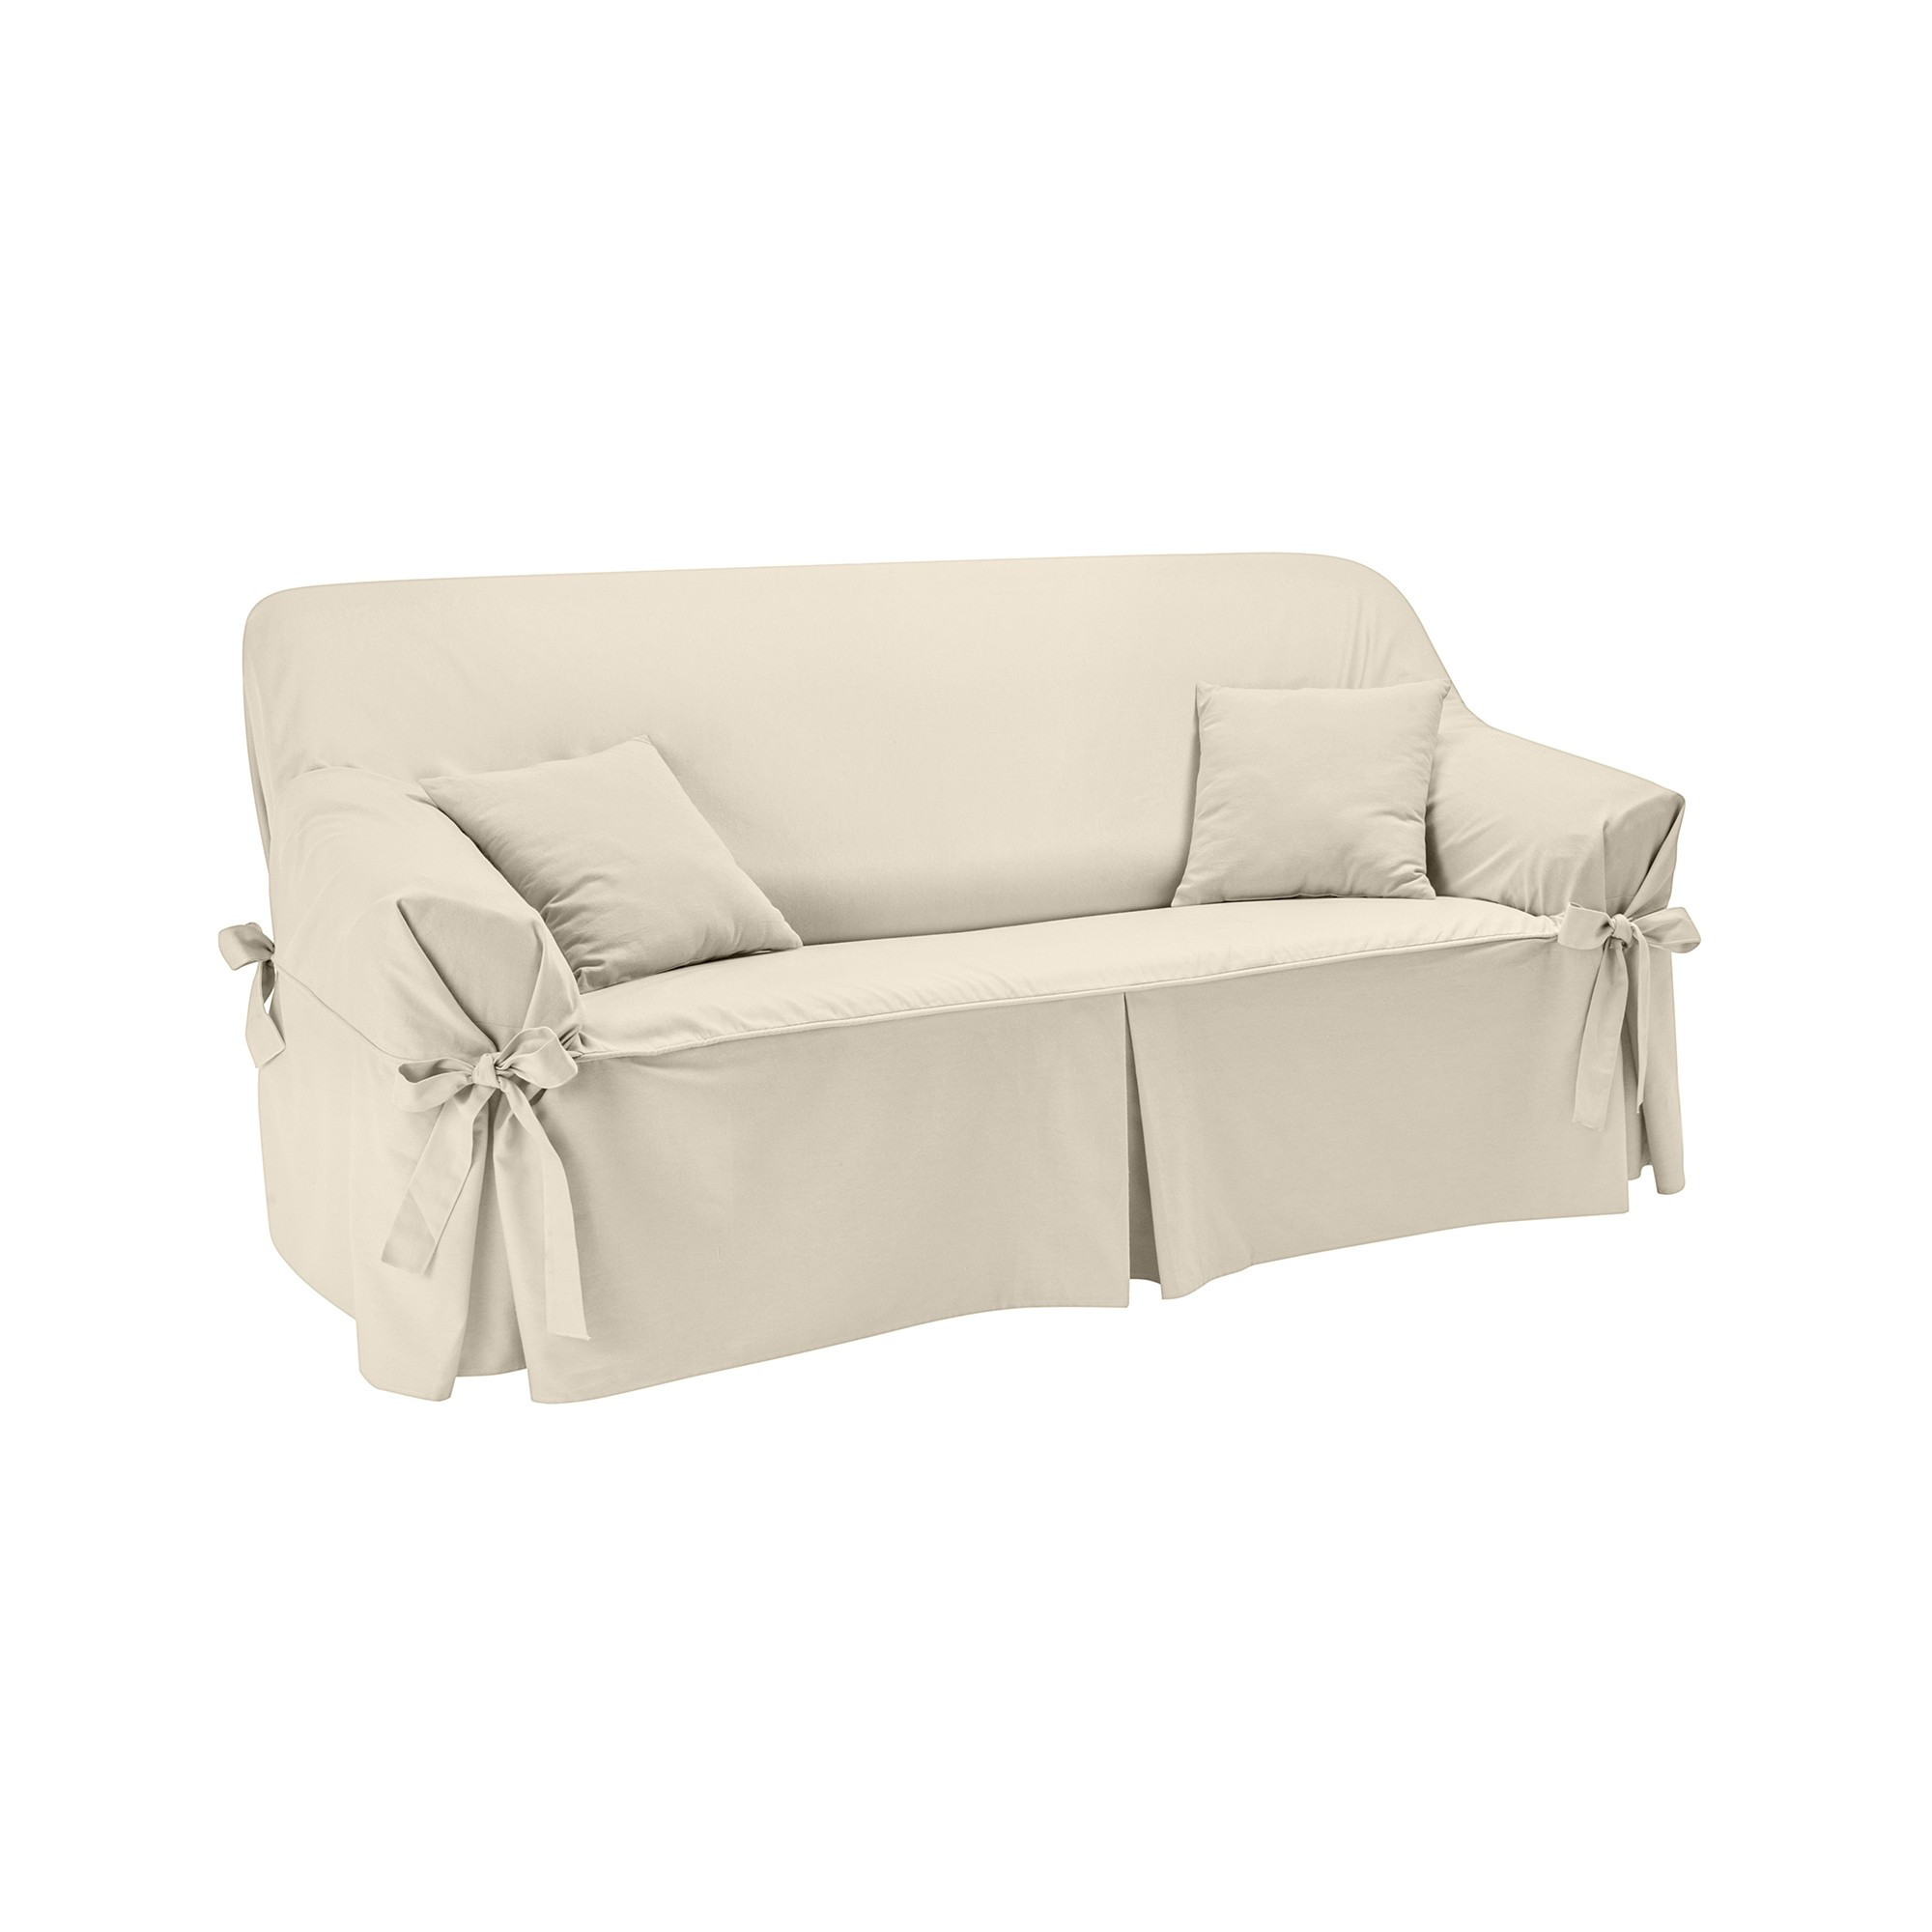 housse canape nouettes preformee